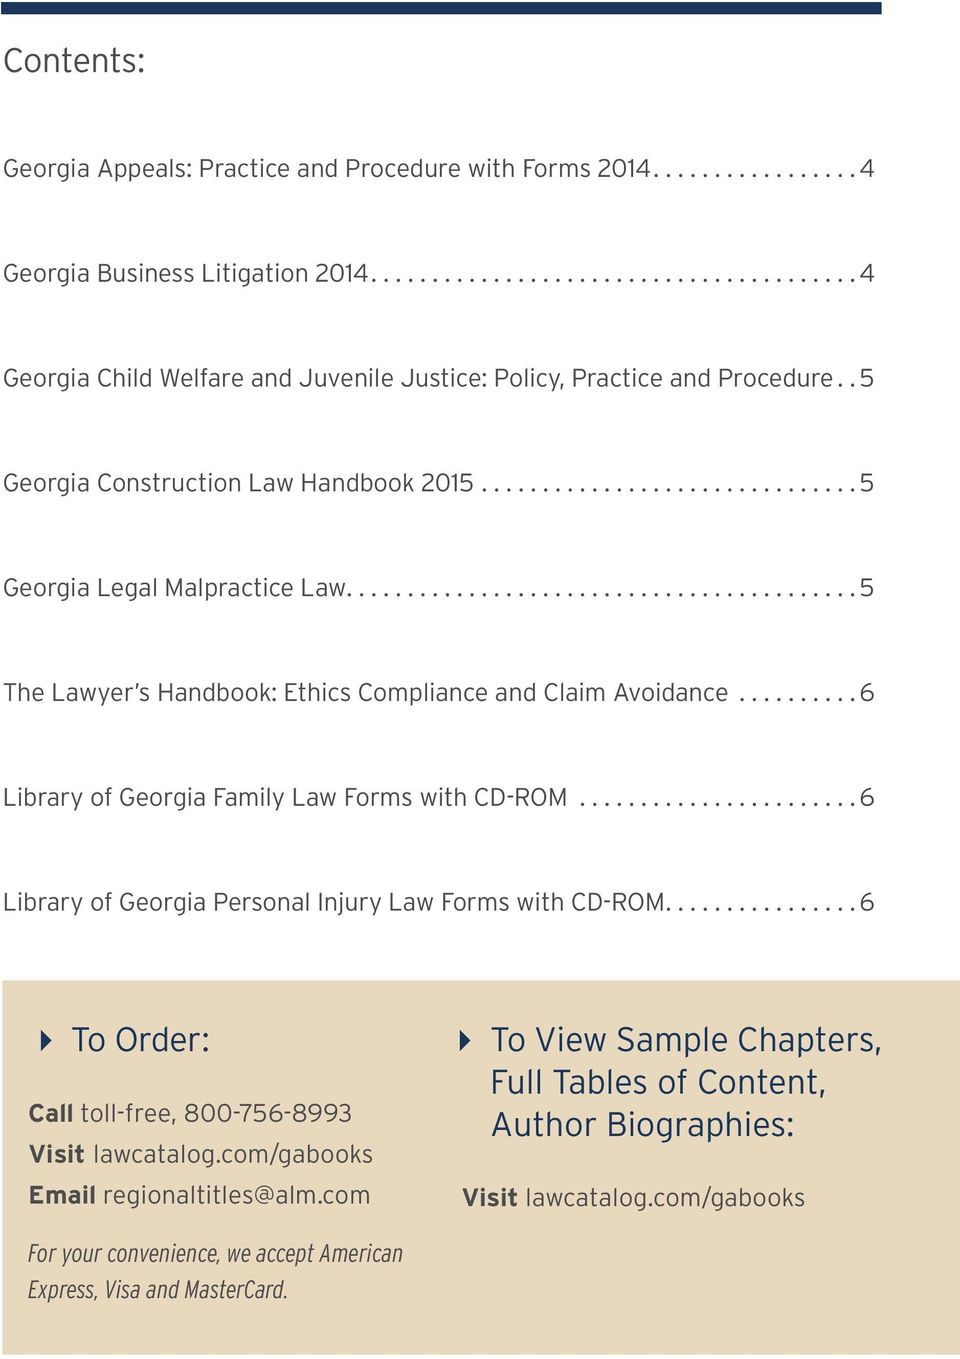 ..6 Library of Georgia Family Law Forms with CD-ROM...6 Library of Georgia Personal Injury Law Forms with CD-ROM...6 4 To Order: Call toll-free, 800-756-8993 Visit lawcatalog.